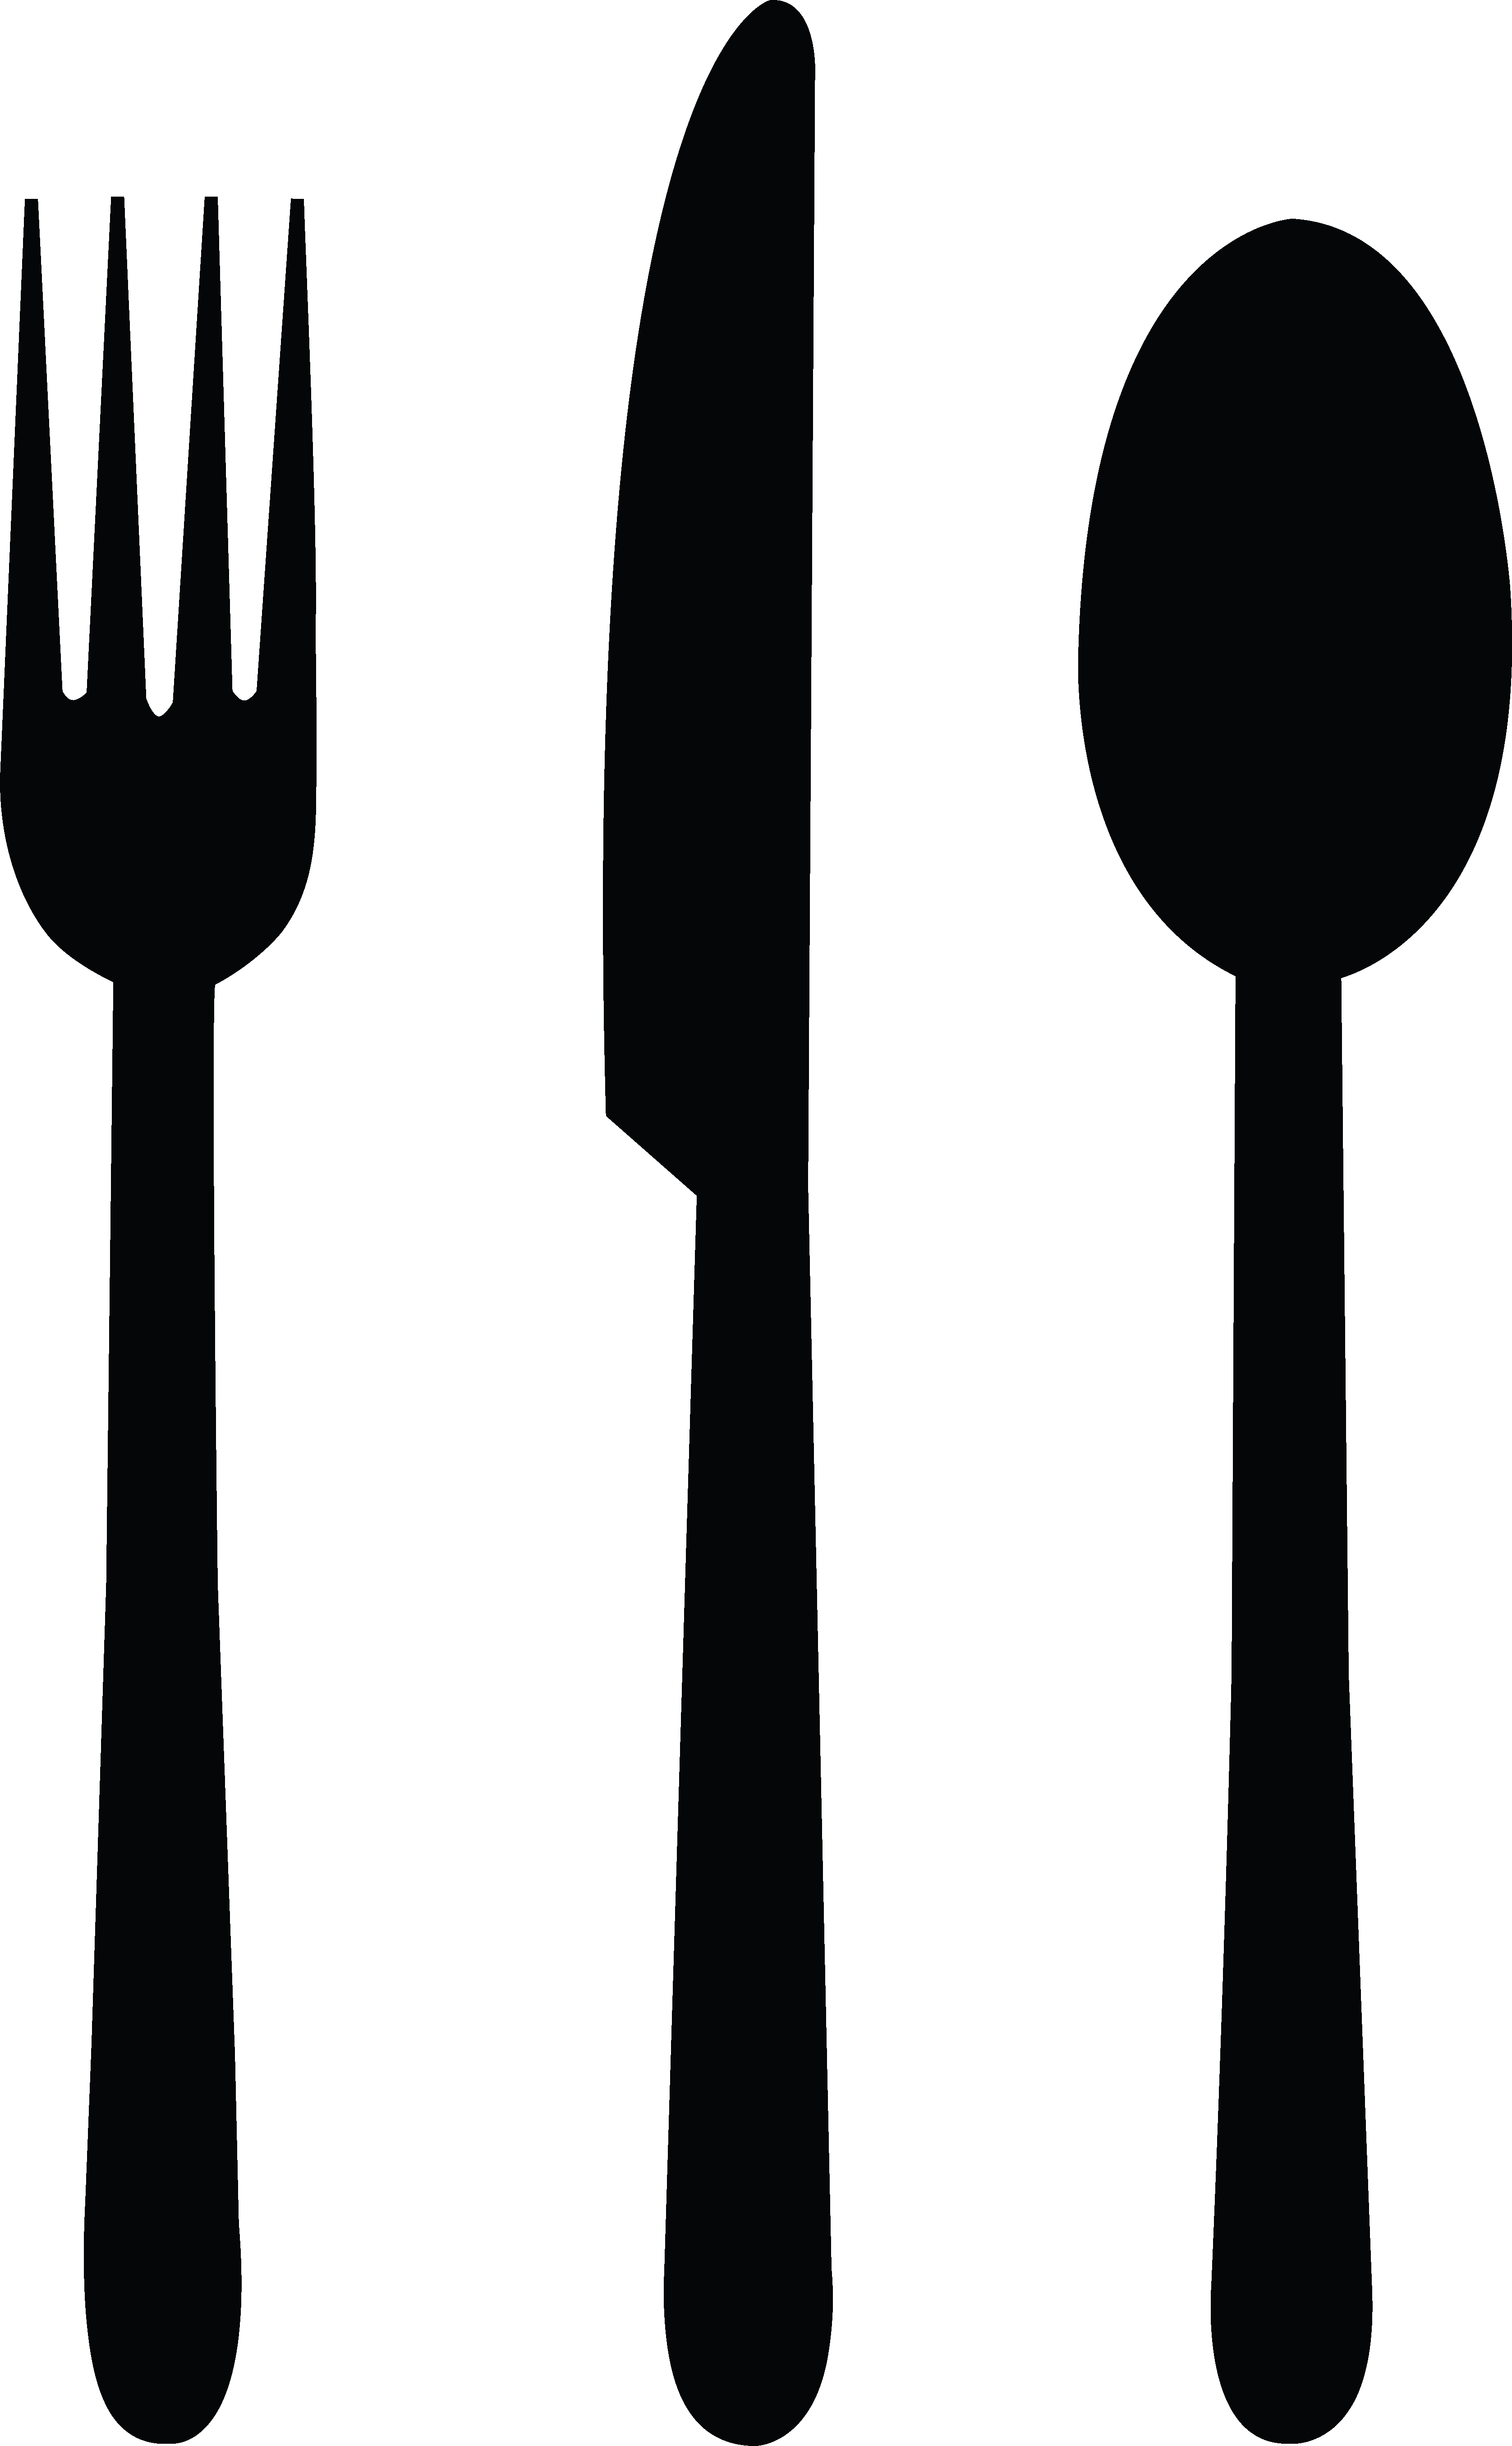 Spoon and fork logo. Catering clipart silverware image royalty free library